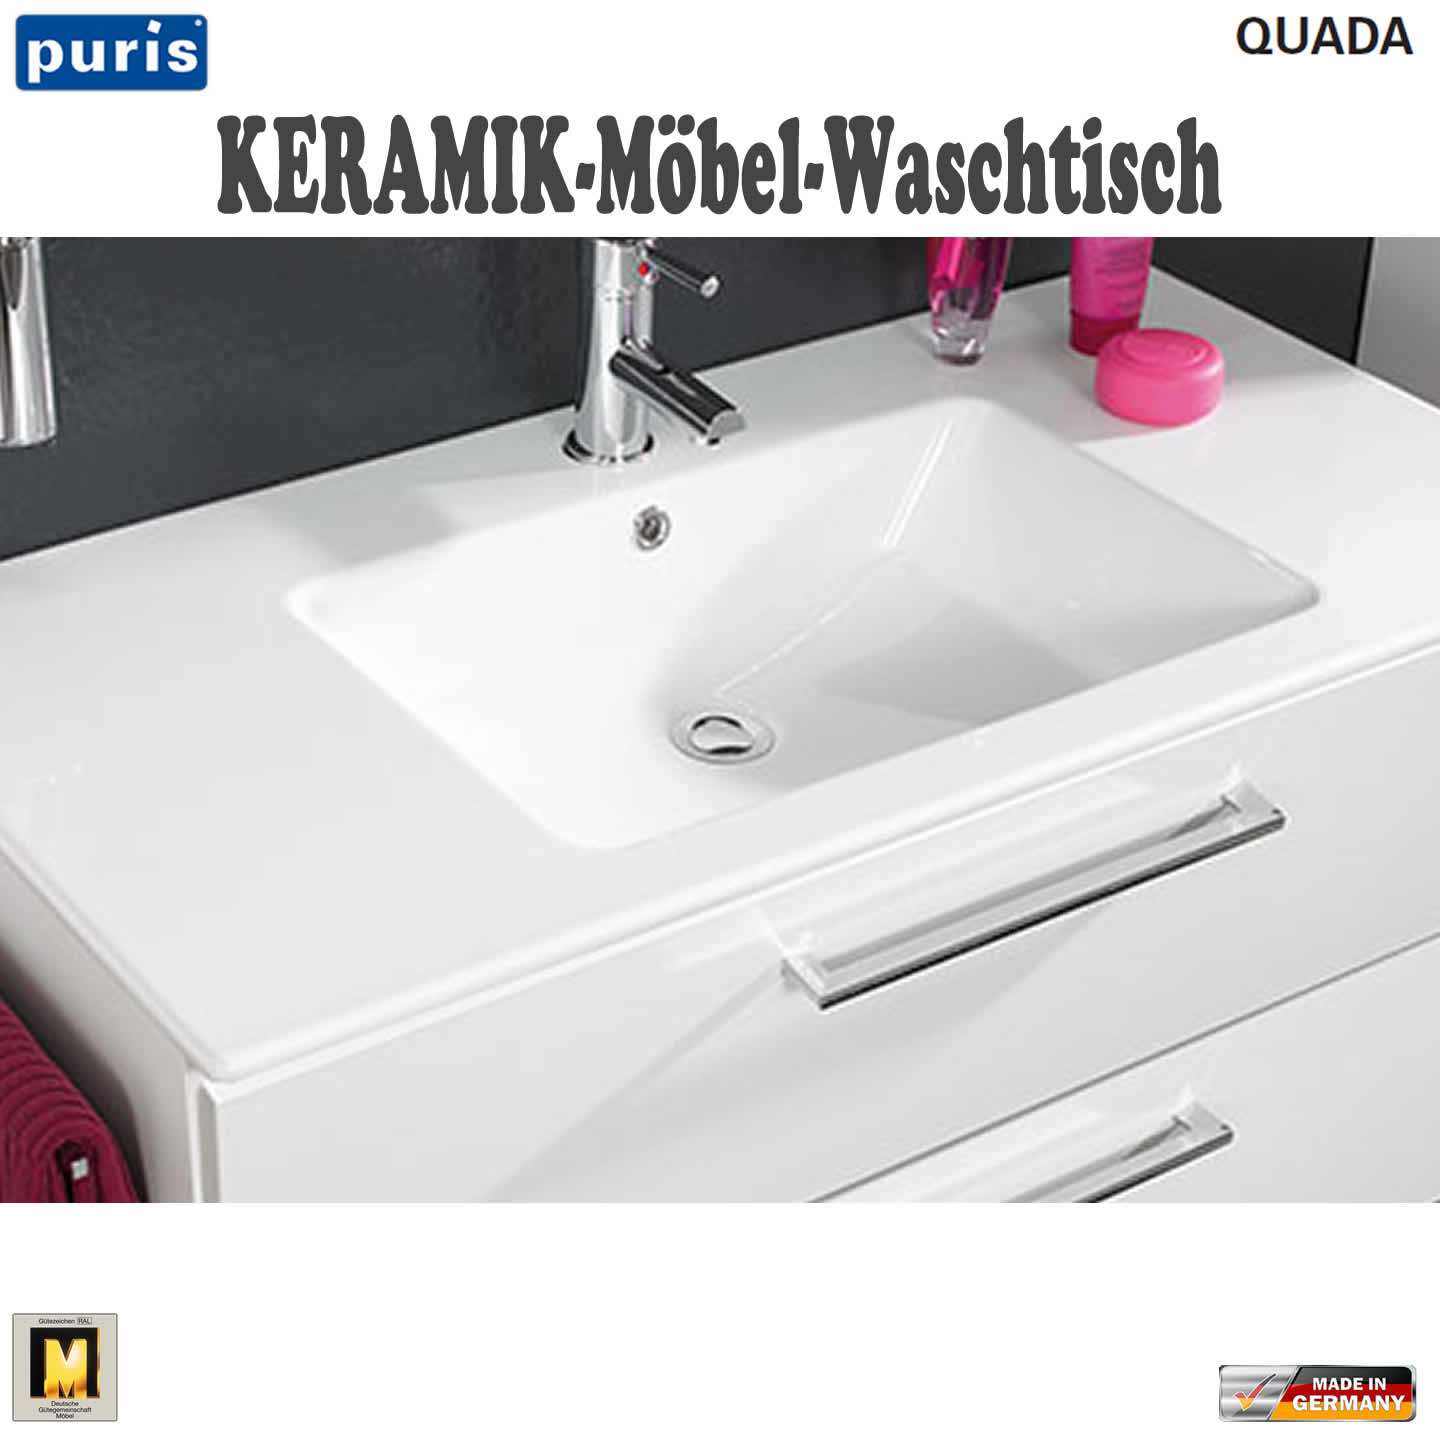 puris quada waschtisch set 120 cm mit keramik doppel waschtisch impulsbad. Black Bedroom Furniture Sets. Home Design Ideas